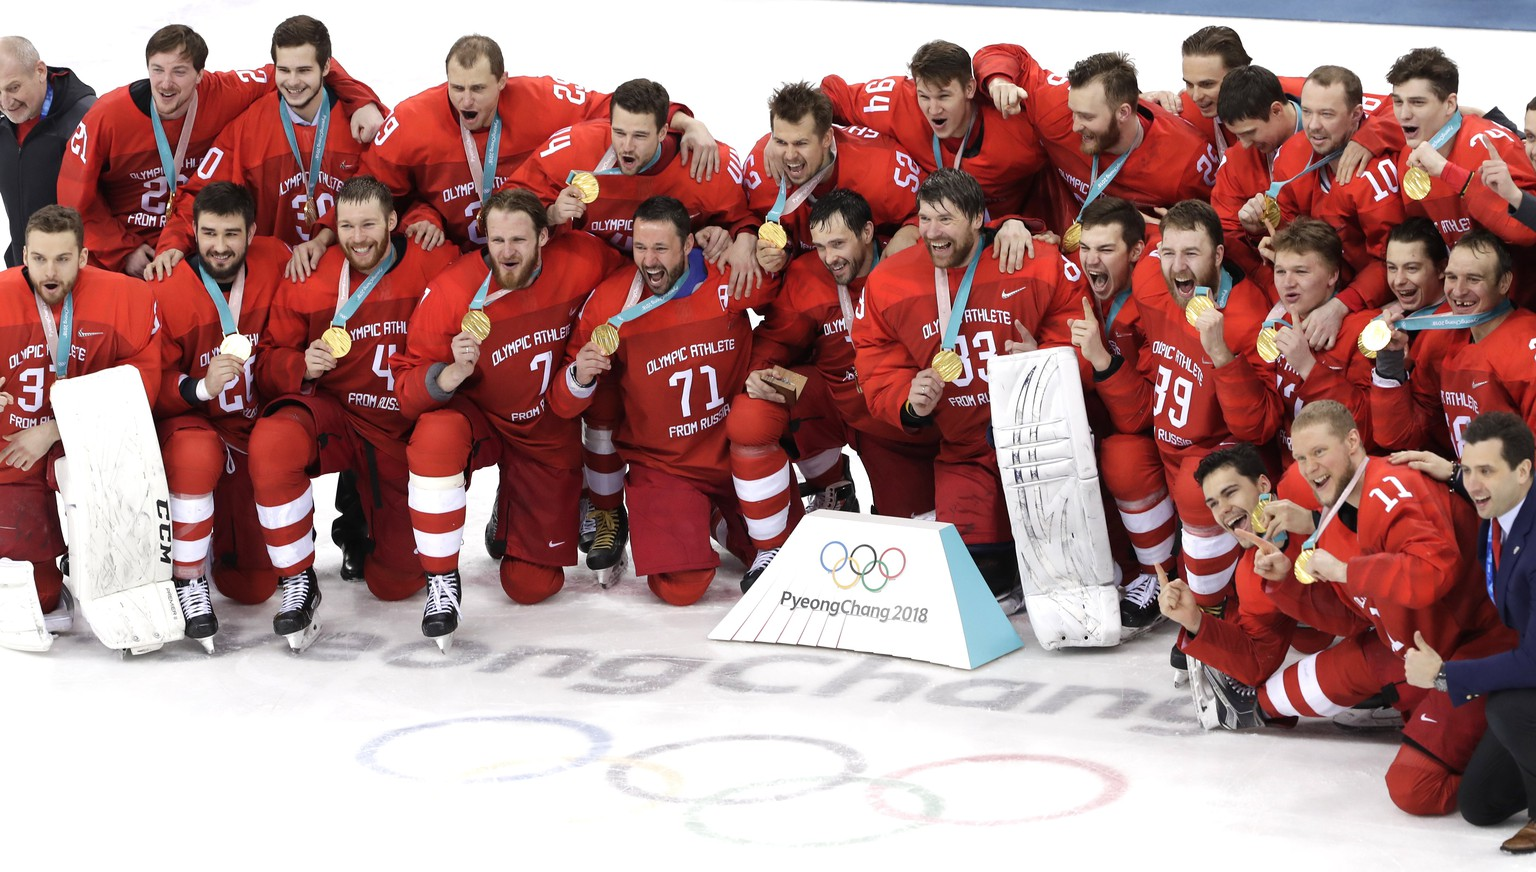 epa06563559 Gold medalists Olympic Athletes of Russia (OAR) react during the medal ceremony of the Men's Ice Hockey gold medal match between Olympic Athletes of Russia (OAR) and Germany at the Gangneung Hockey Centre during the PyeongChang 2018 Winter Olympic Games, in Gangneung, South Korea, 25 February 2018.  EPA/VALDRIN XHEMAJ